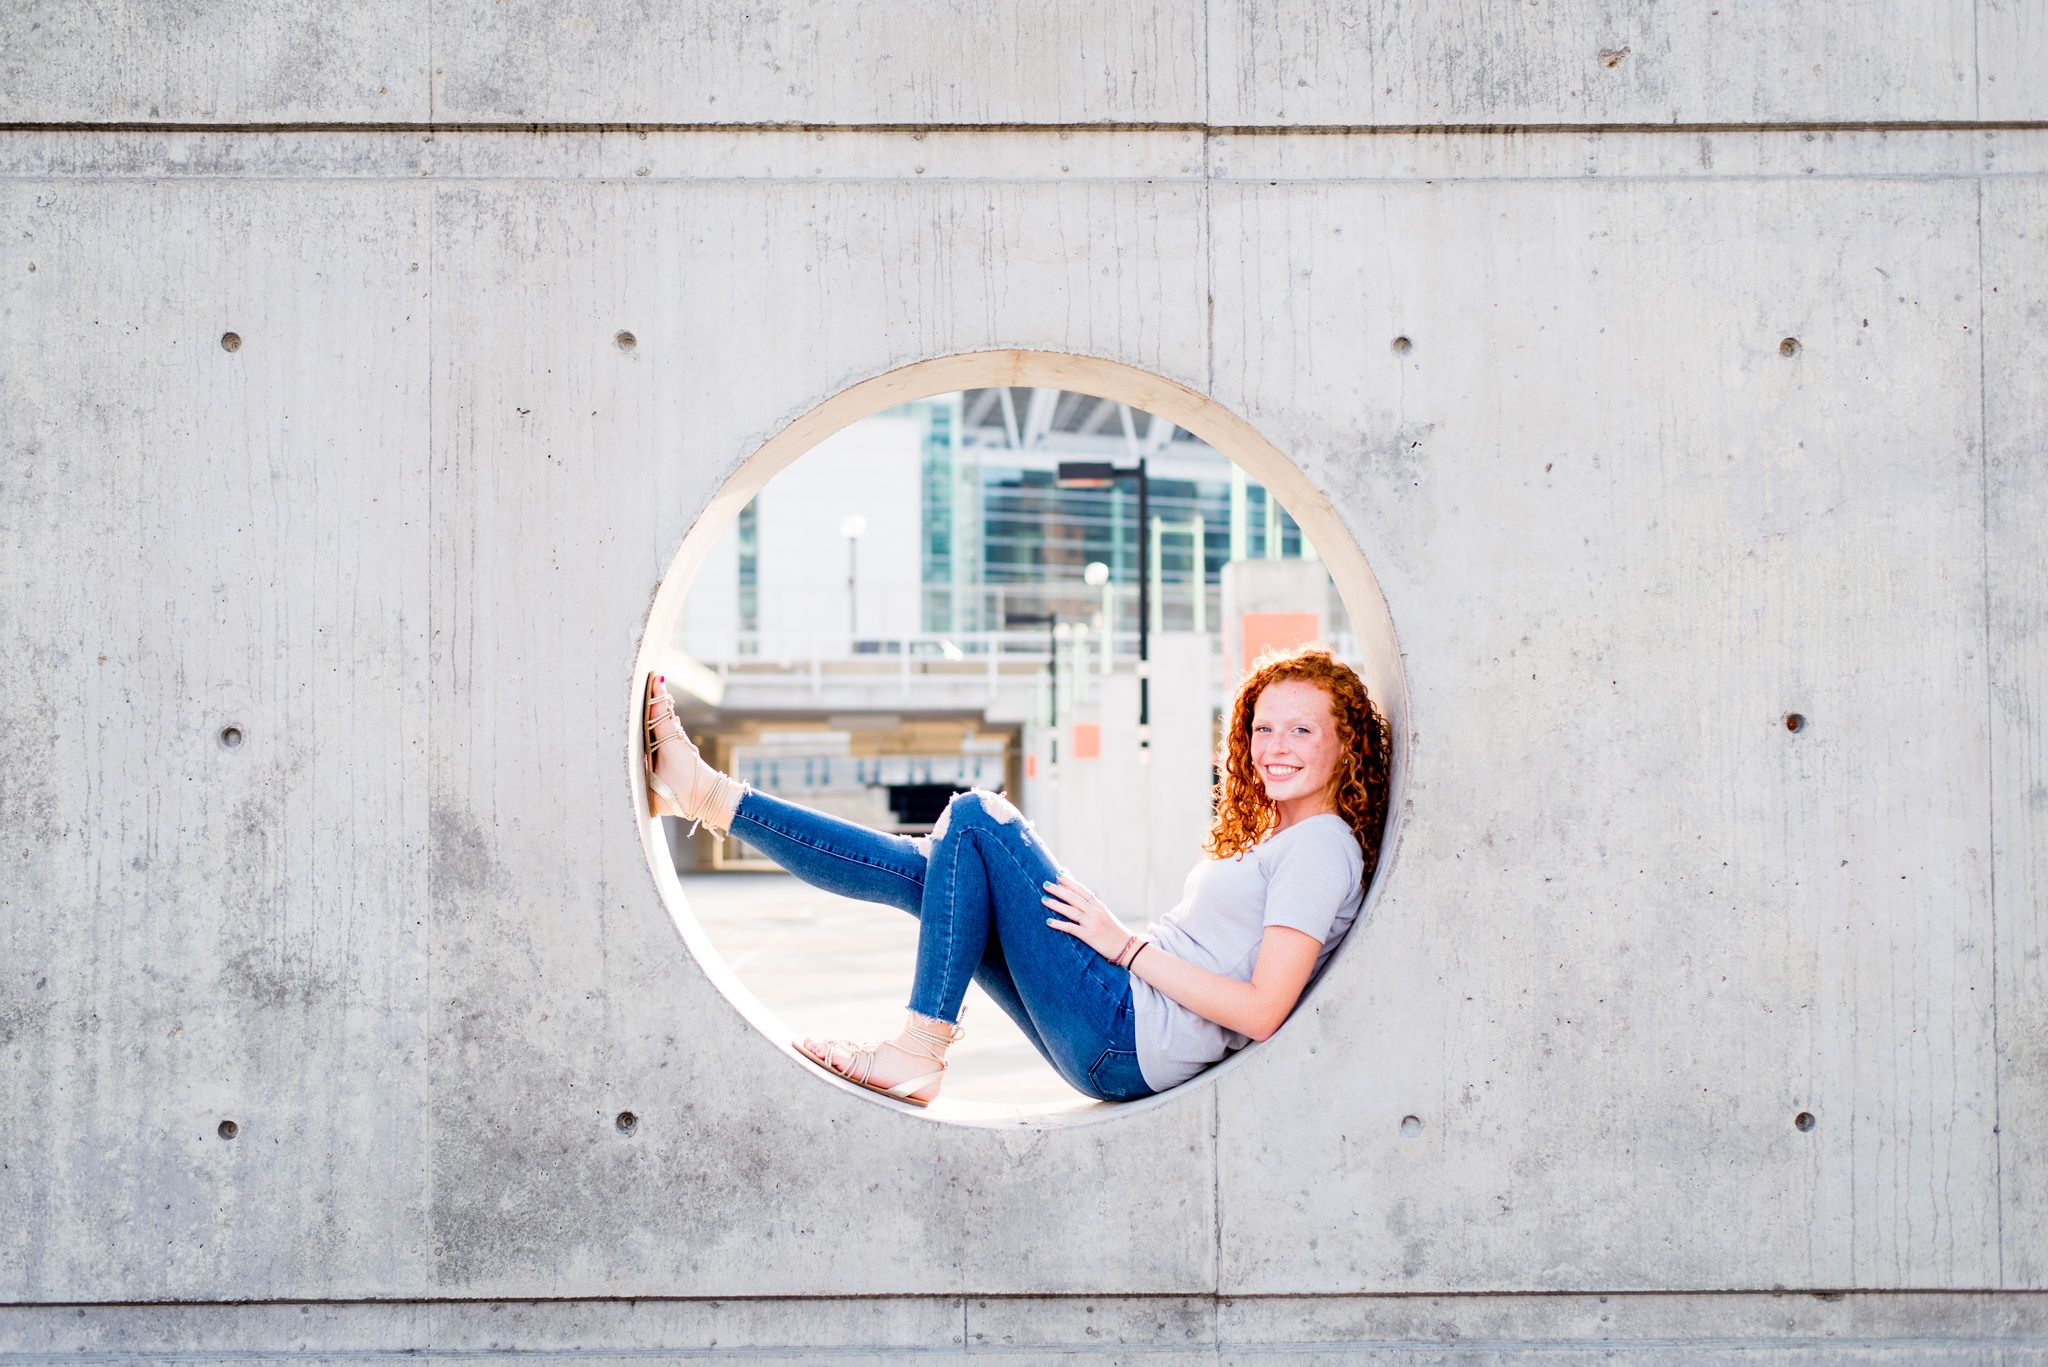 young woman with red curly hair sitting inside a circle cut out of concrete in a Cincinnati parking garage